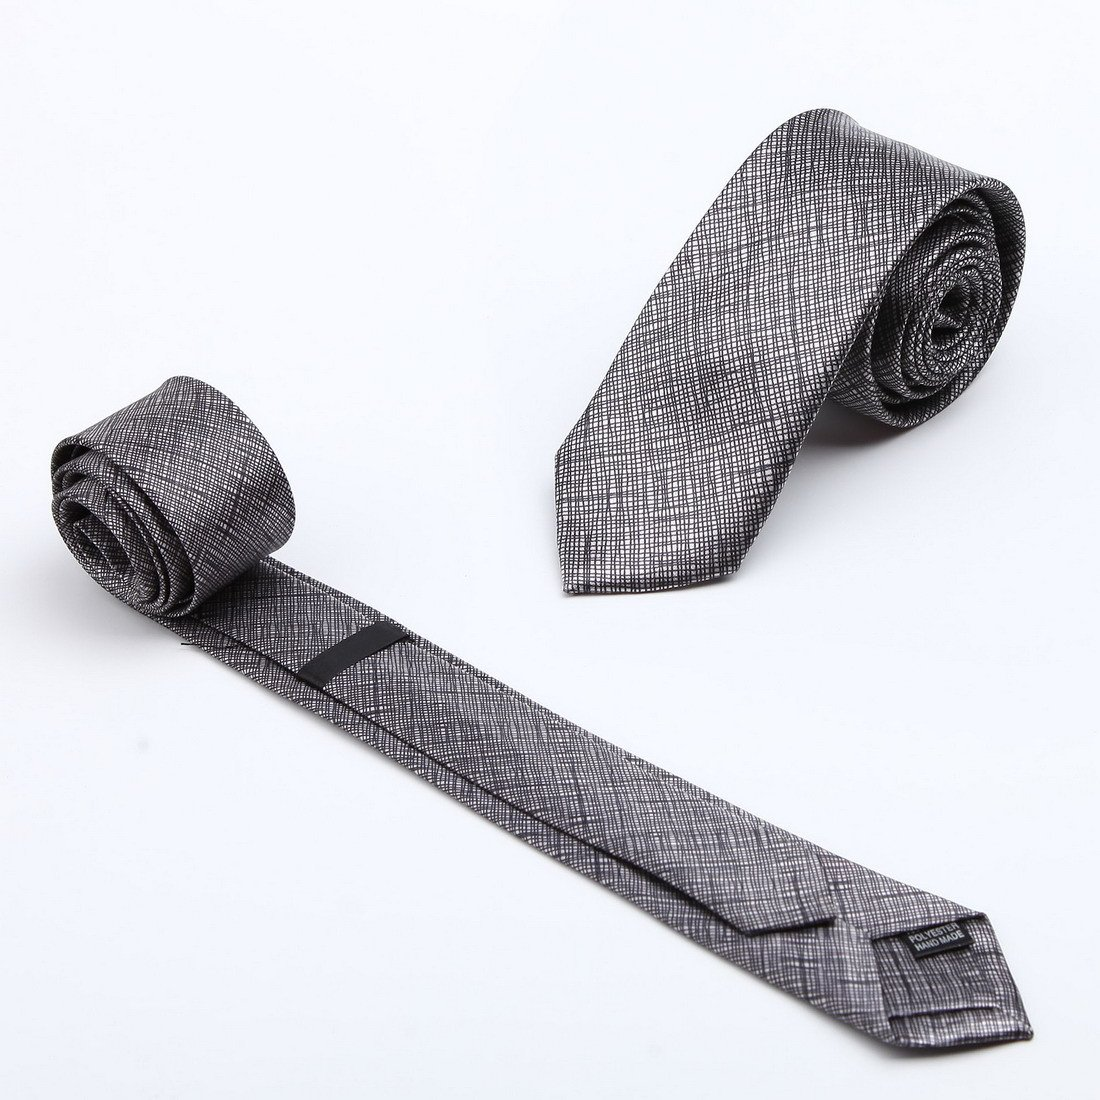 KT3066 Love Shopstyle Slim Ties Polyester Fantastic World 3 Pack Skinny Ties Set by Dan Smith by Dan Smith (Image #6)